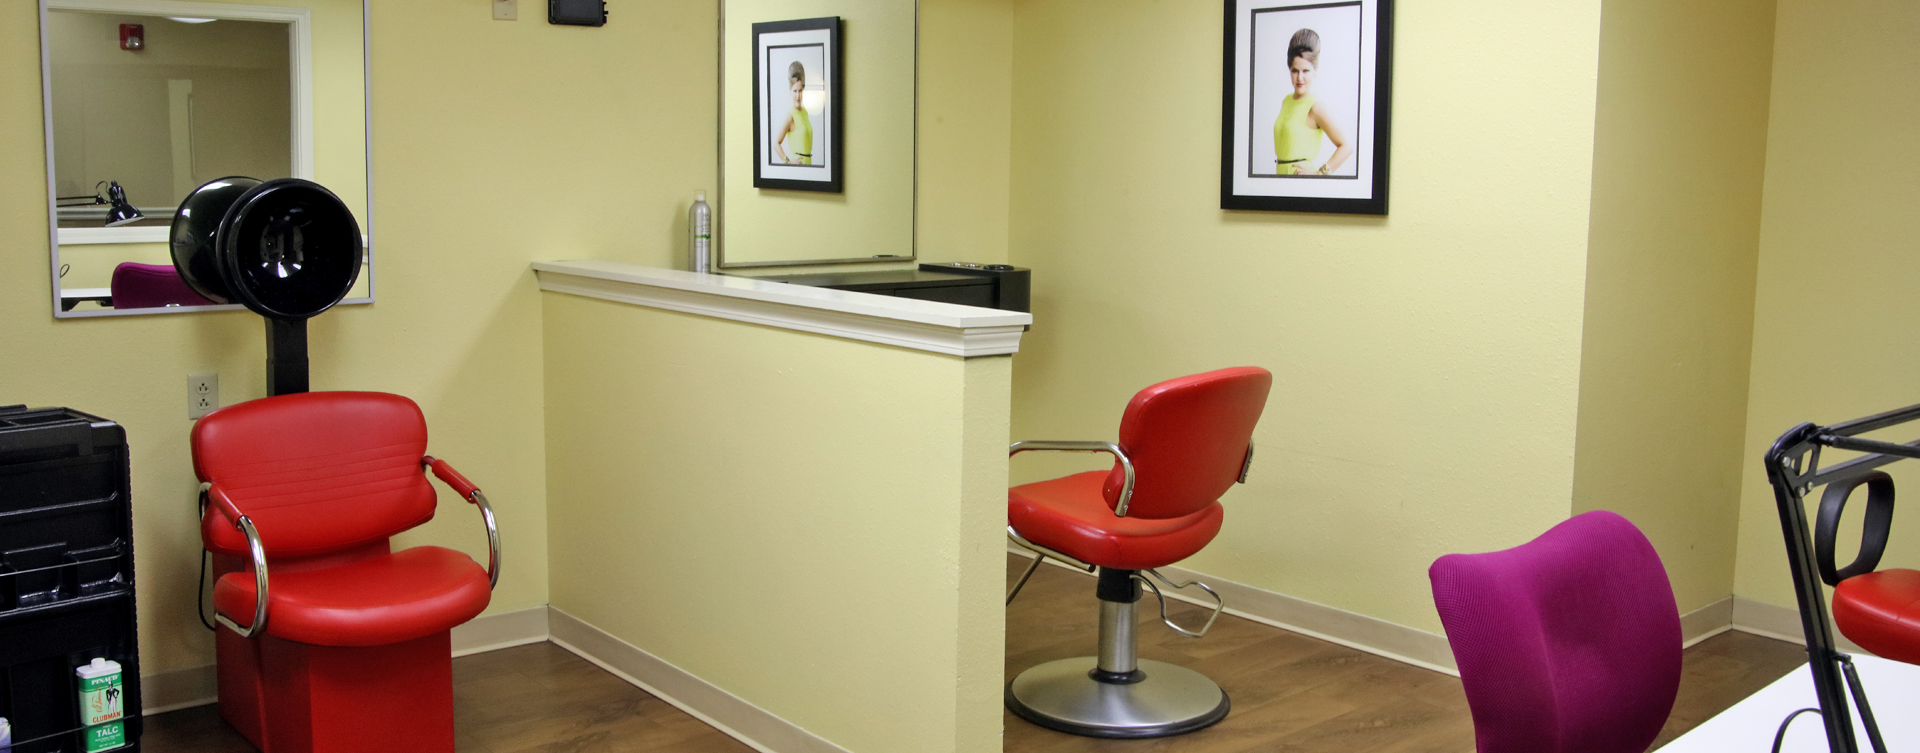 Receive personalized, at-home treatment from our stylist in the salon at Bickford of Rockford